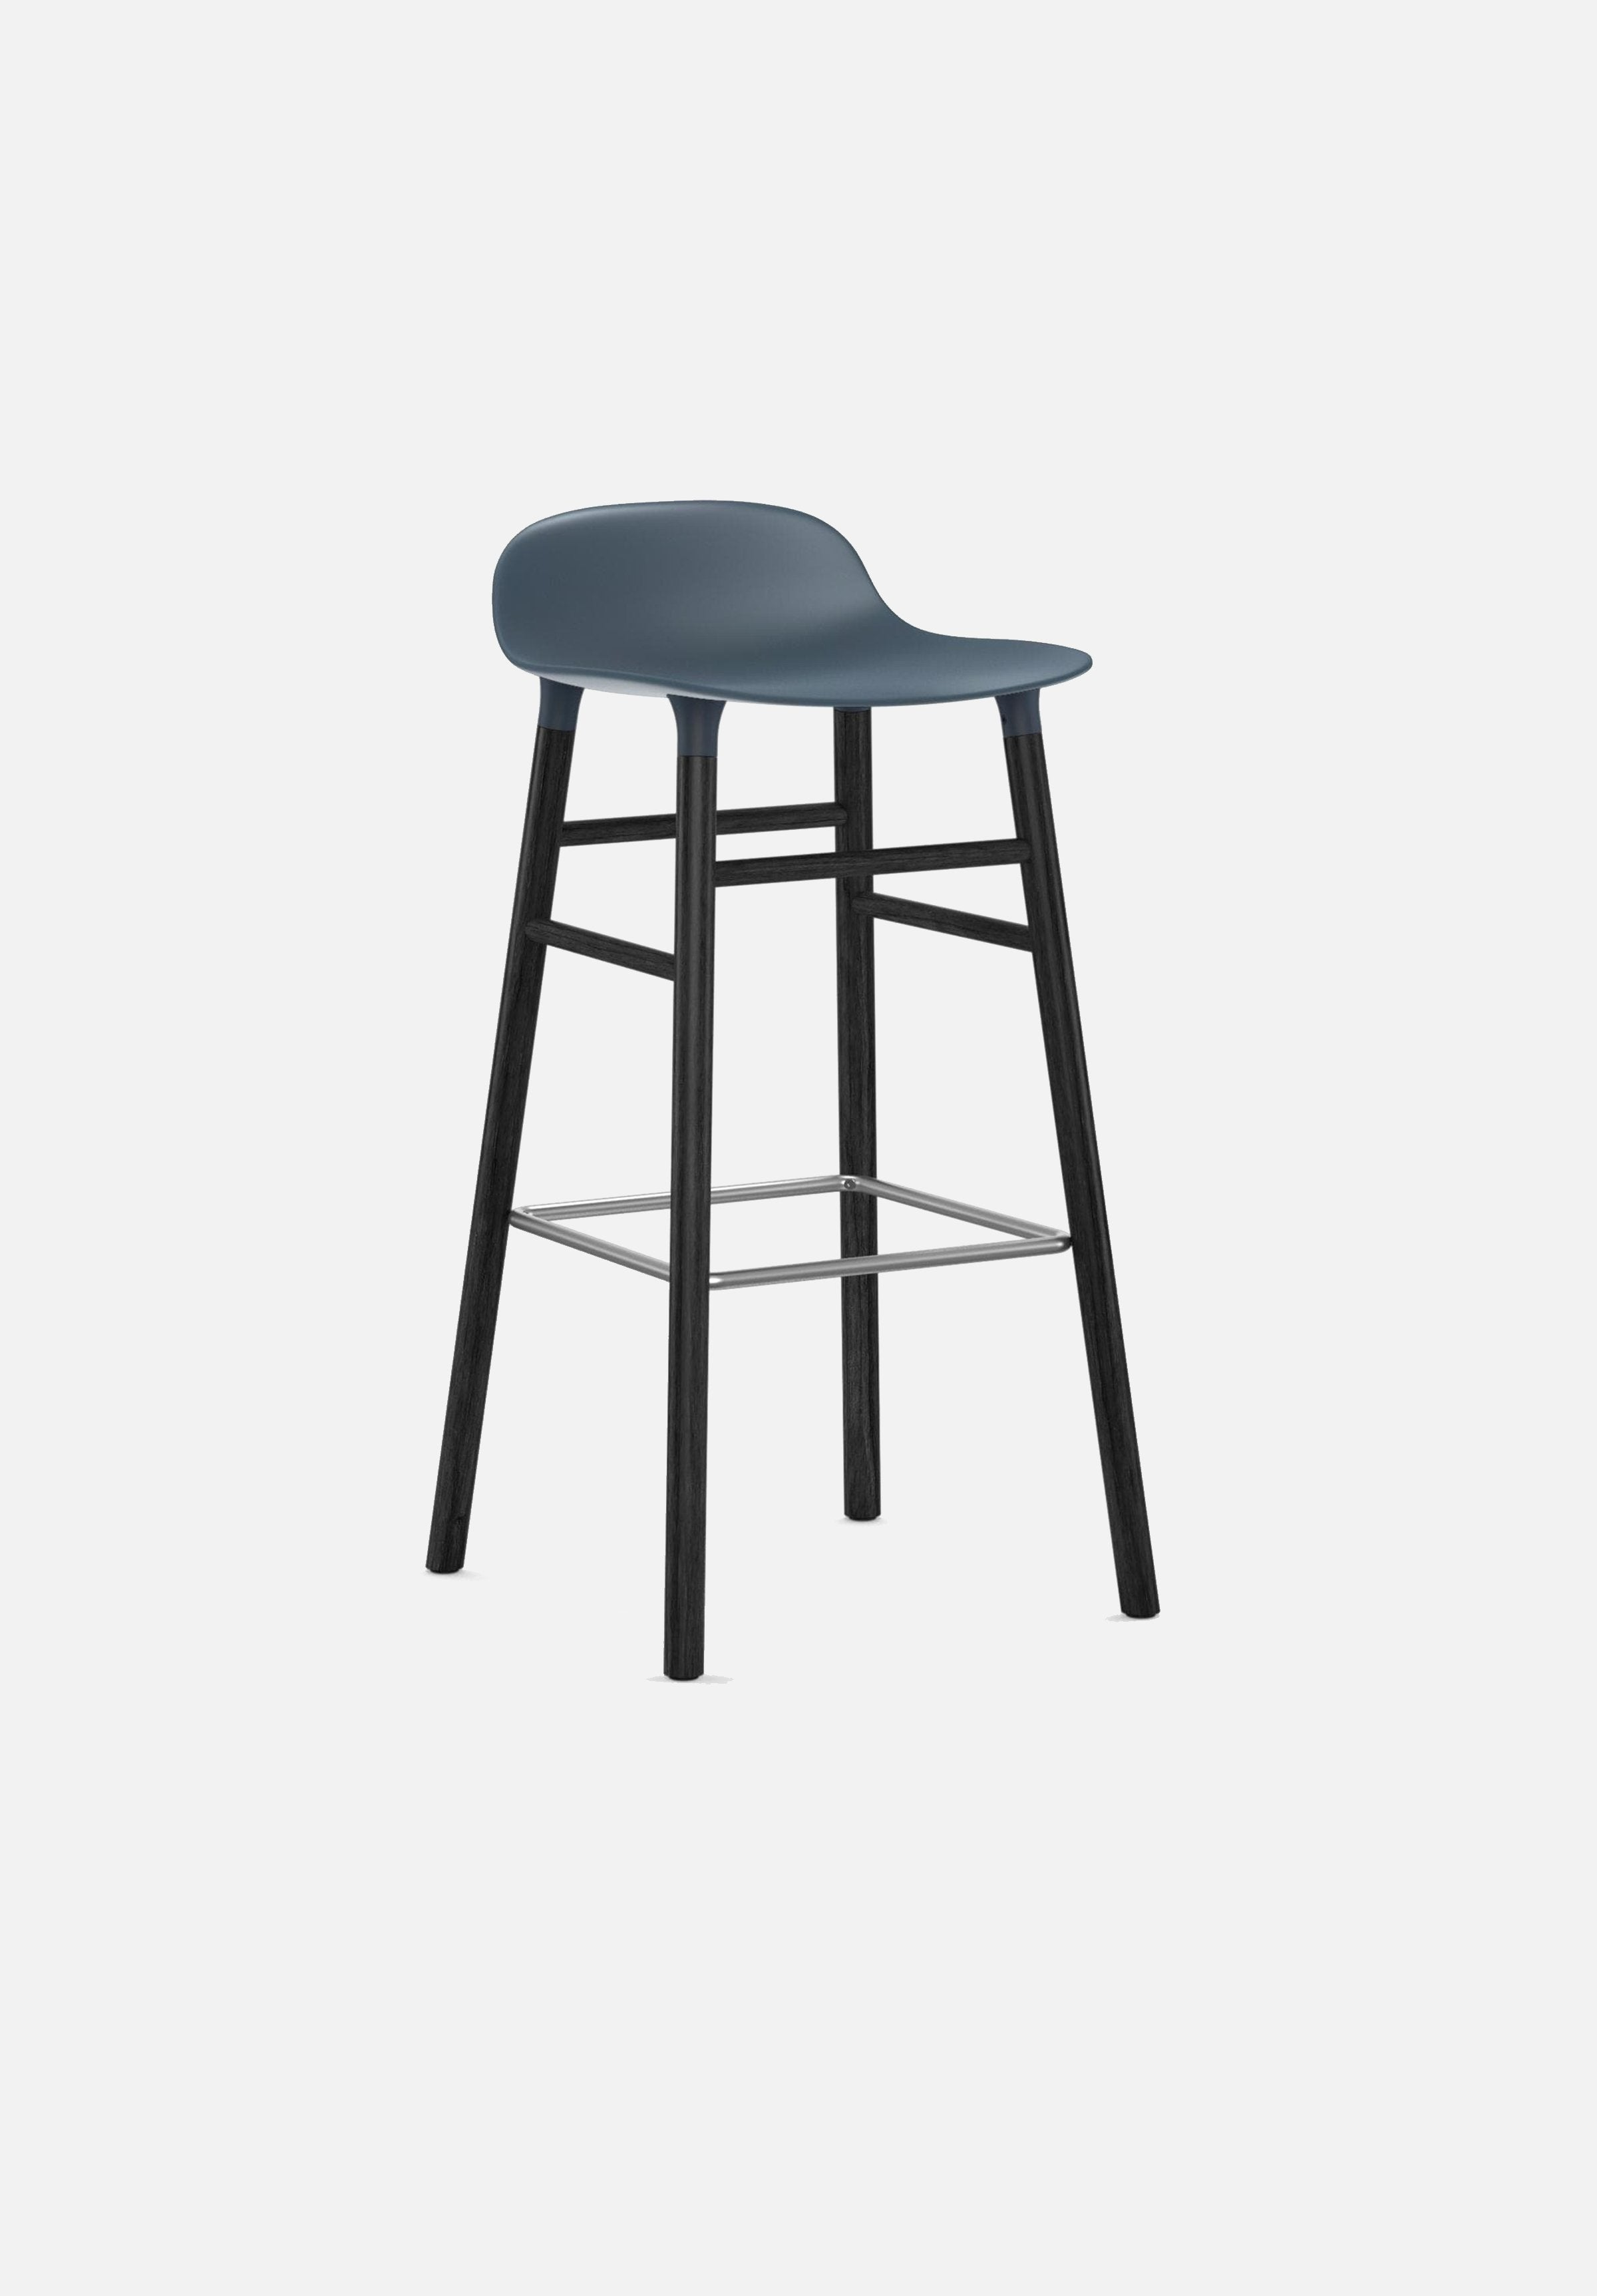 Form Stool — 75cm-Simon Legald-Normann Copenhagen-Blue-Black Lacquered Wood-Average-canada-design-store-danish-denmark-furniture-interior